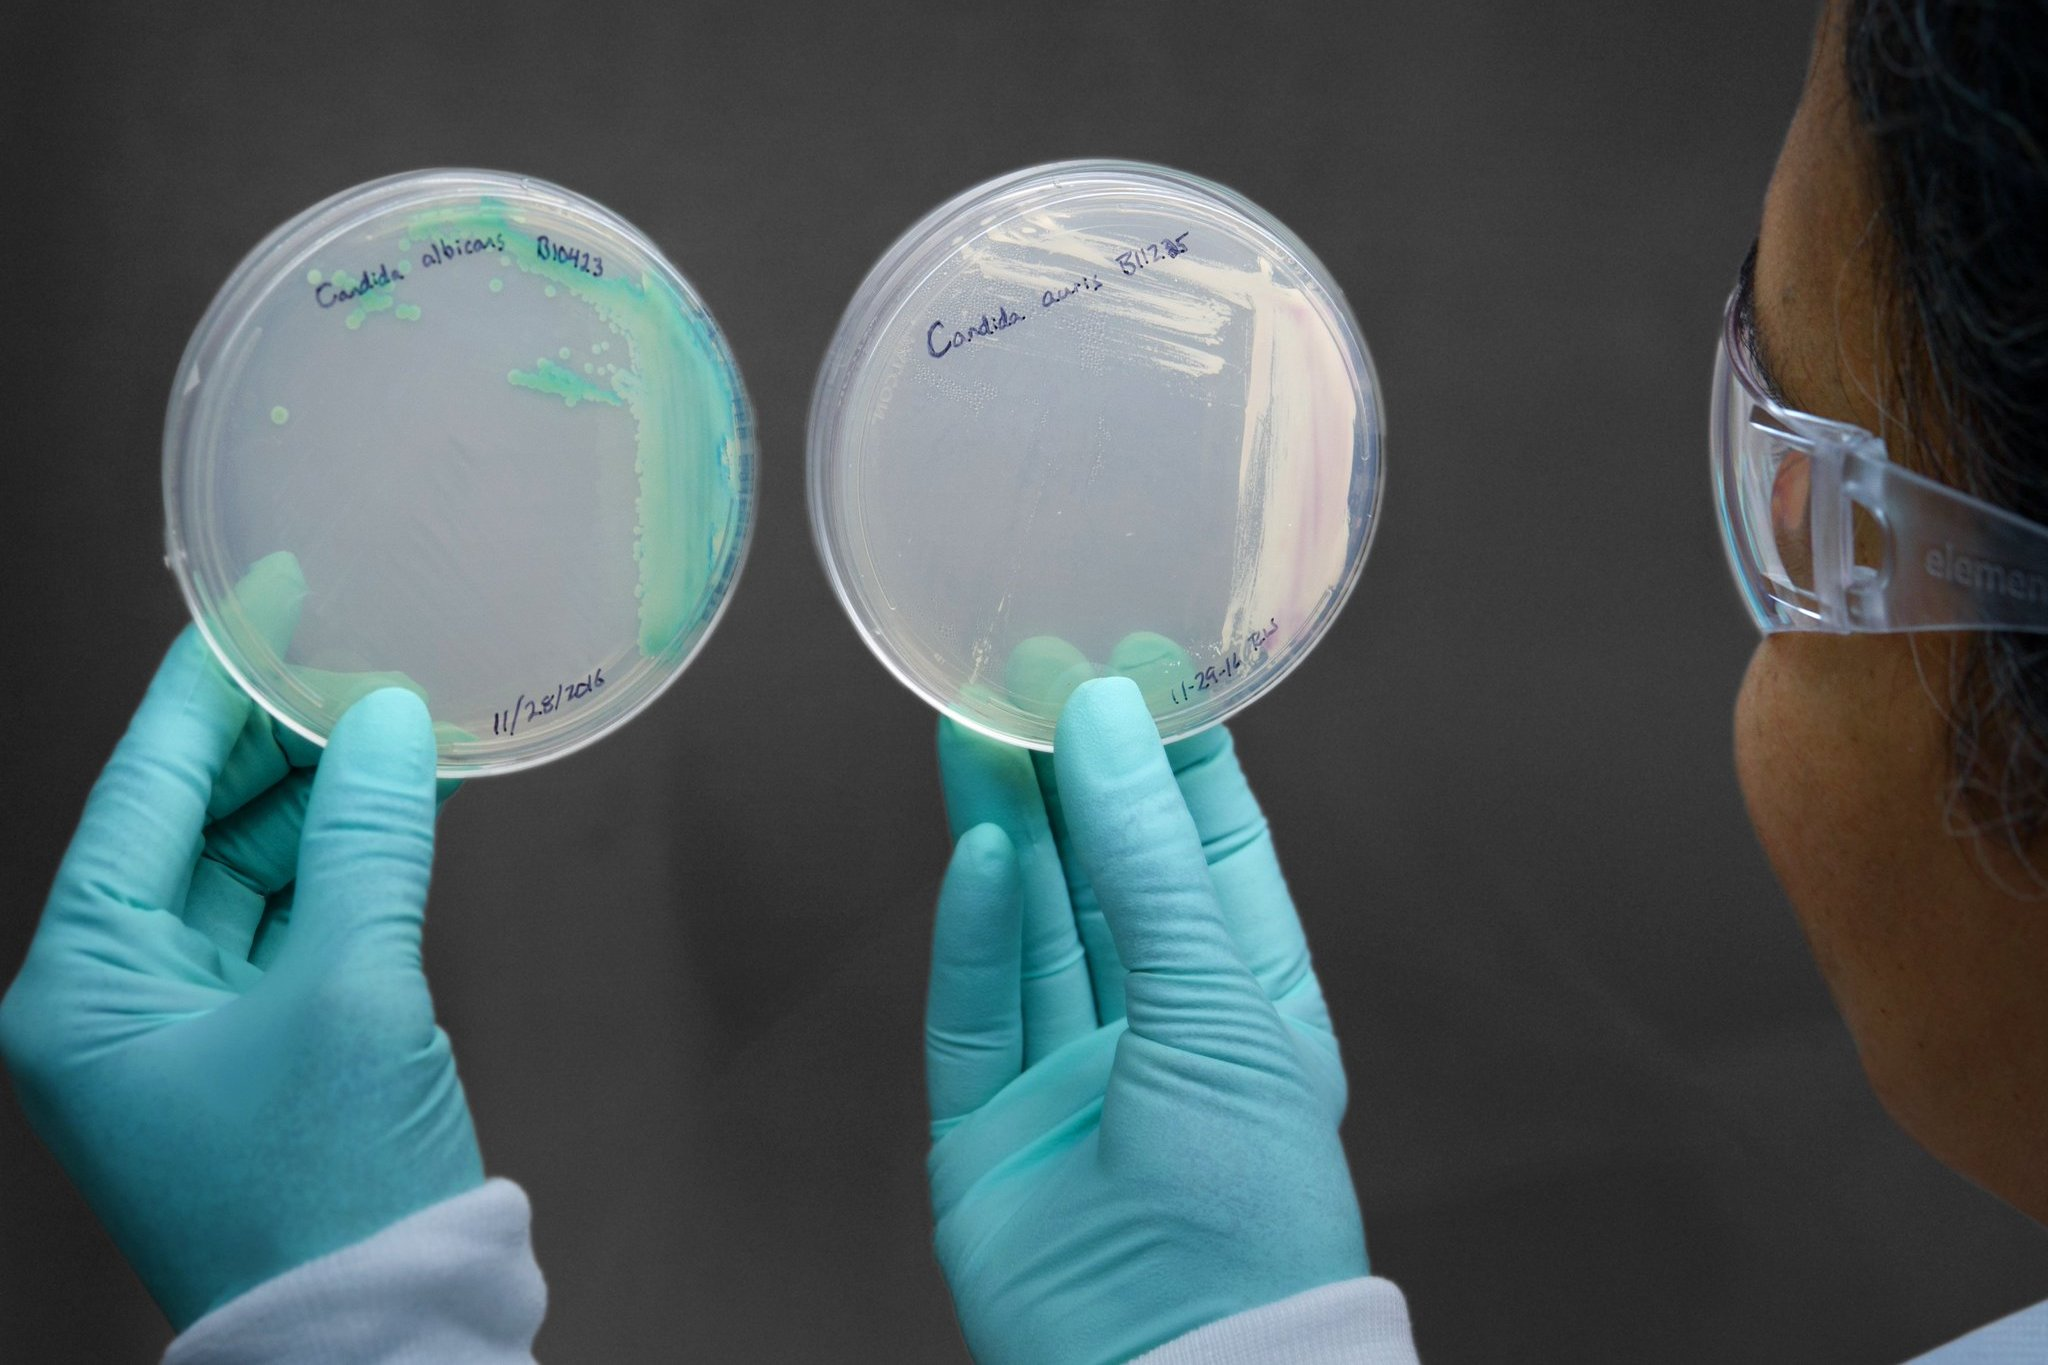 A  petri dish of cultured Candida auris, right. When Ms. Spoor's infection  didn't respond to anti-fungal medications, she was told to get her  affairs in order. Credit: Centers for Disease Control and Prevention